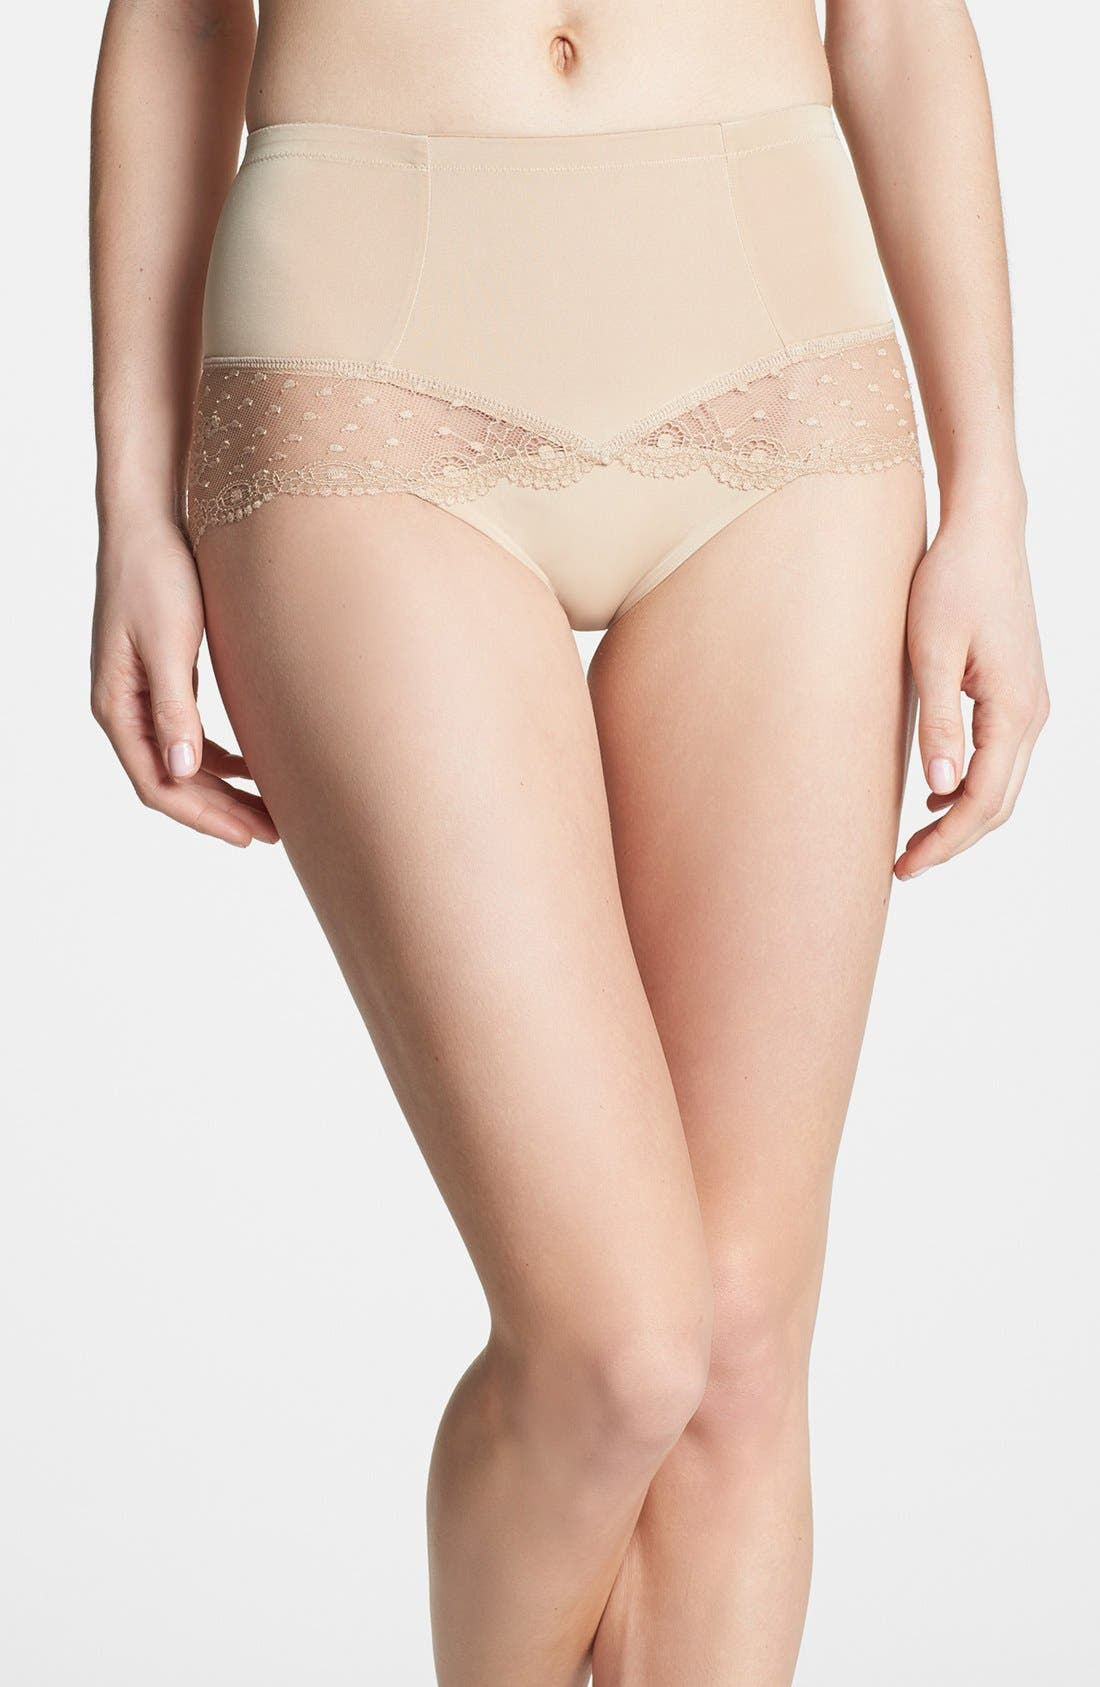 Main Image - DKNY 'Lace Curves' Shaping Briefs (Online Only) (2 for $36)